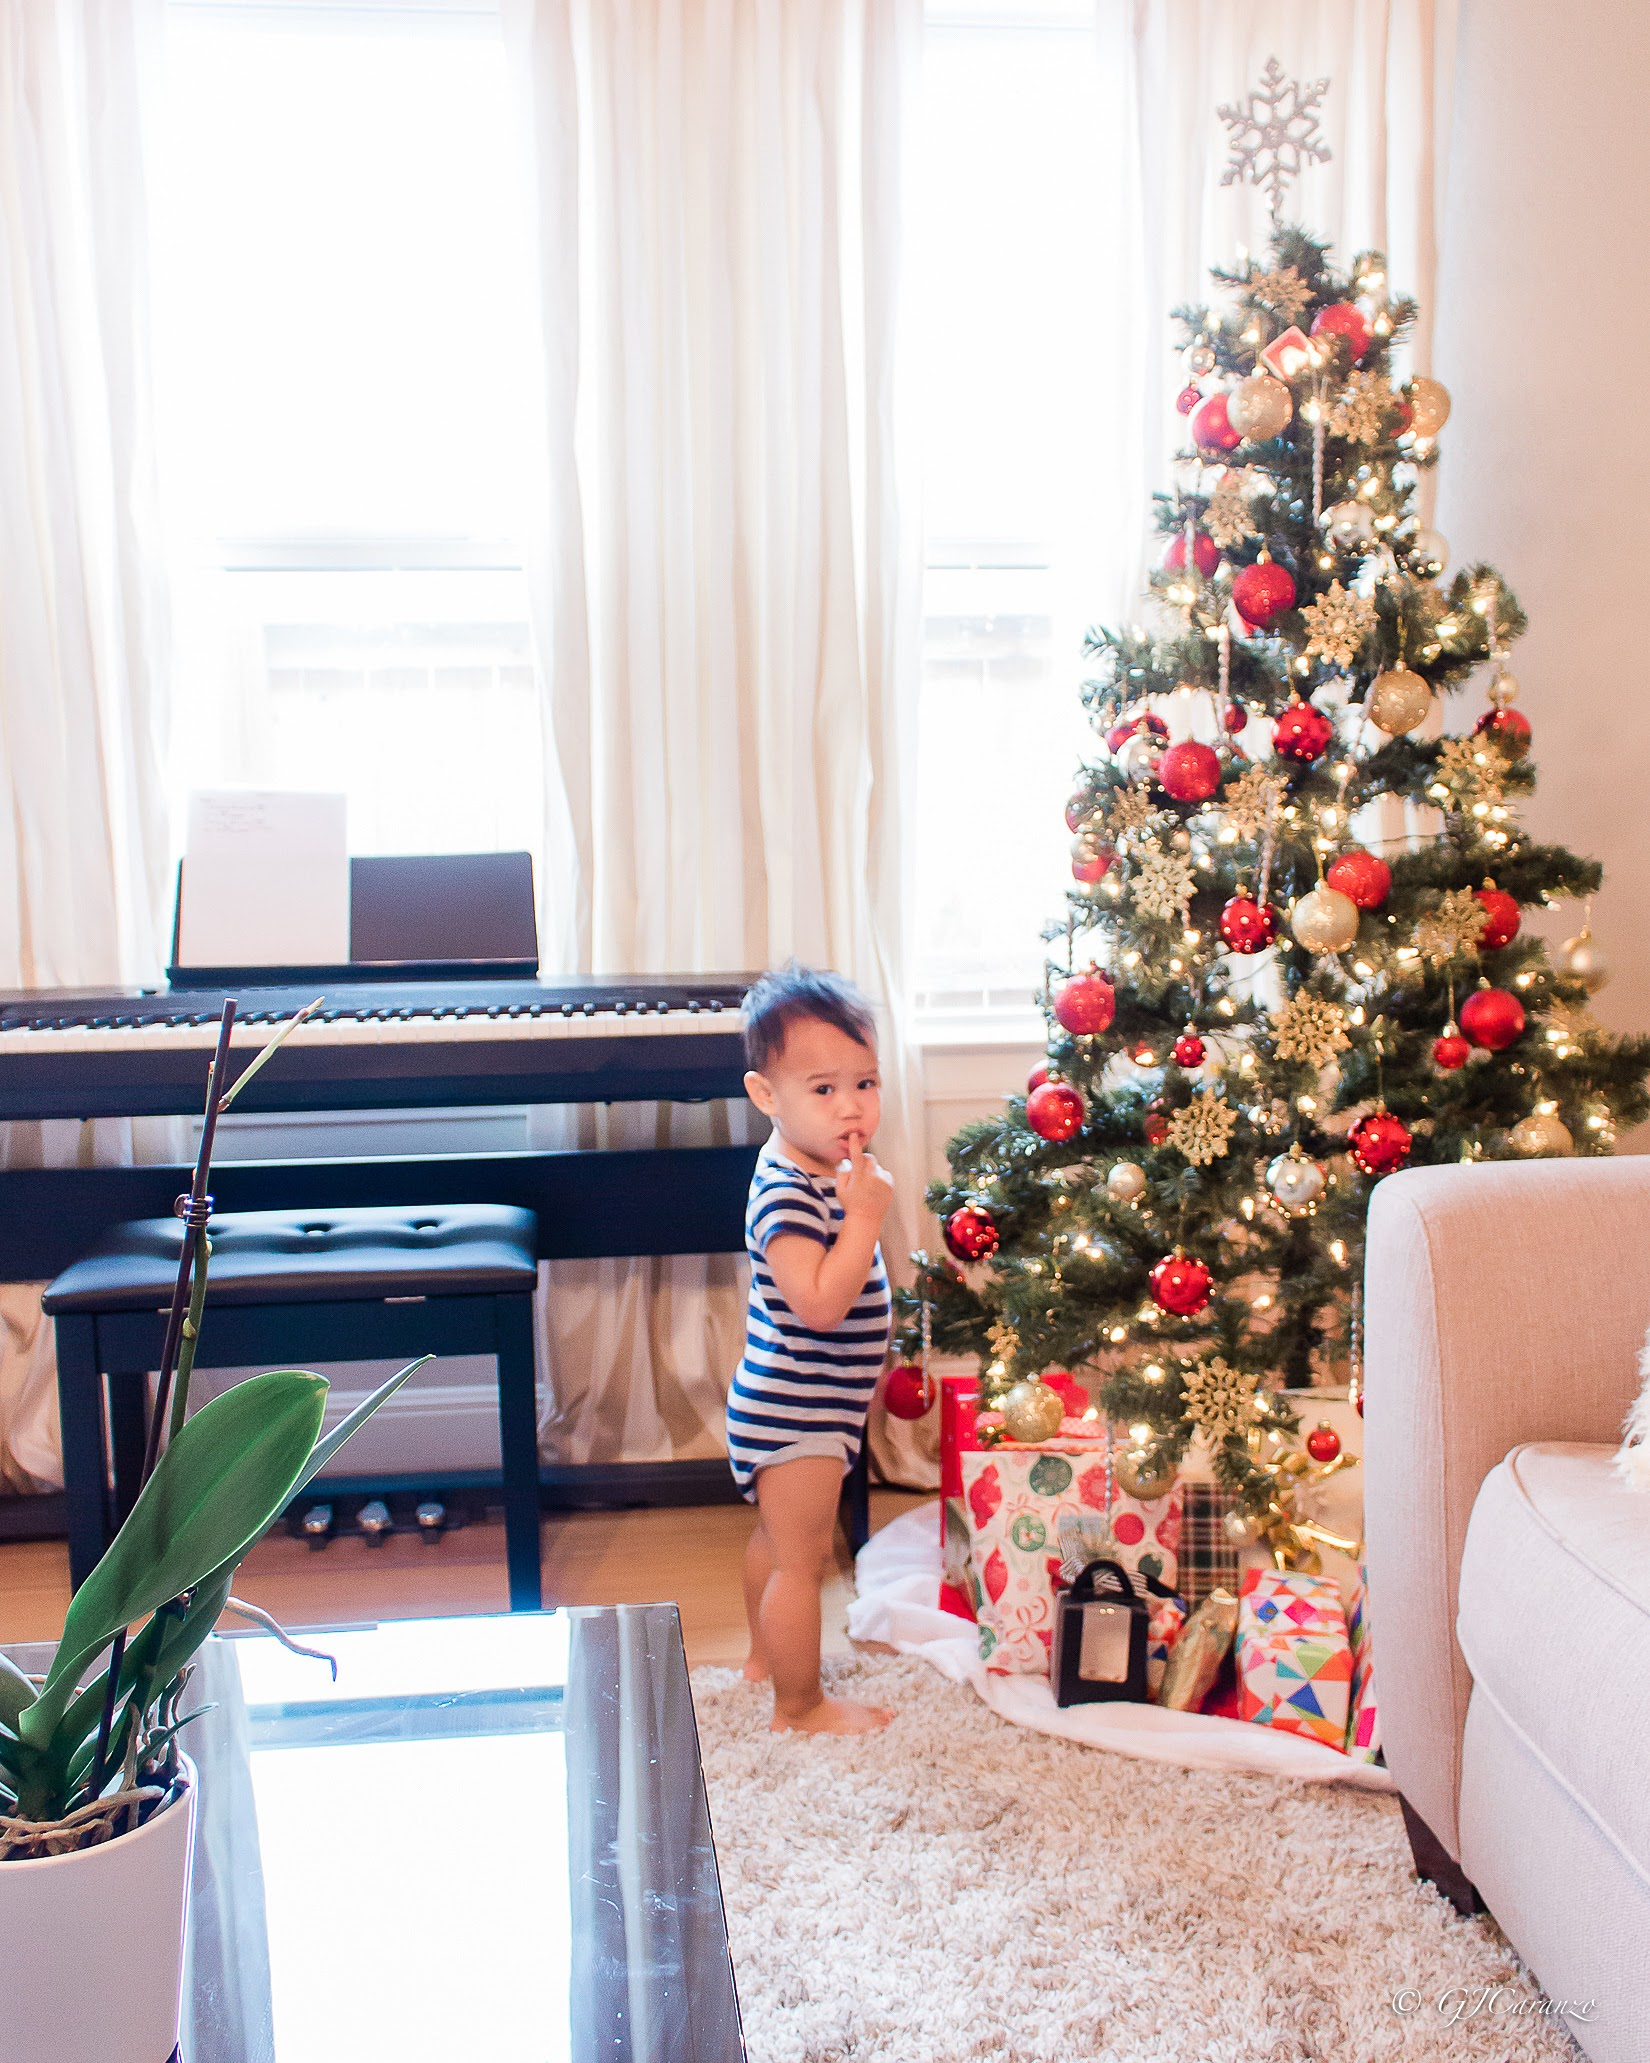 Help Your Kids From Gift-Opening Meltdowns This Christmas